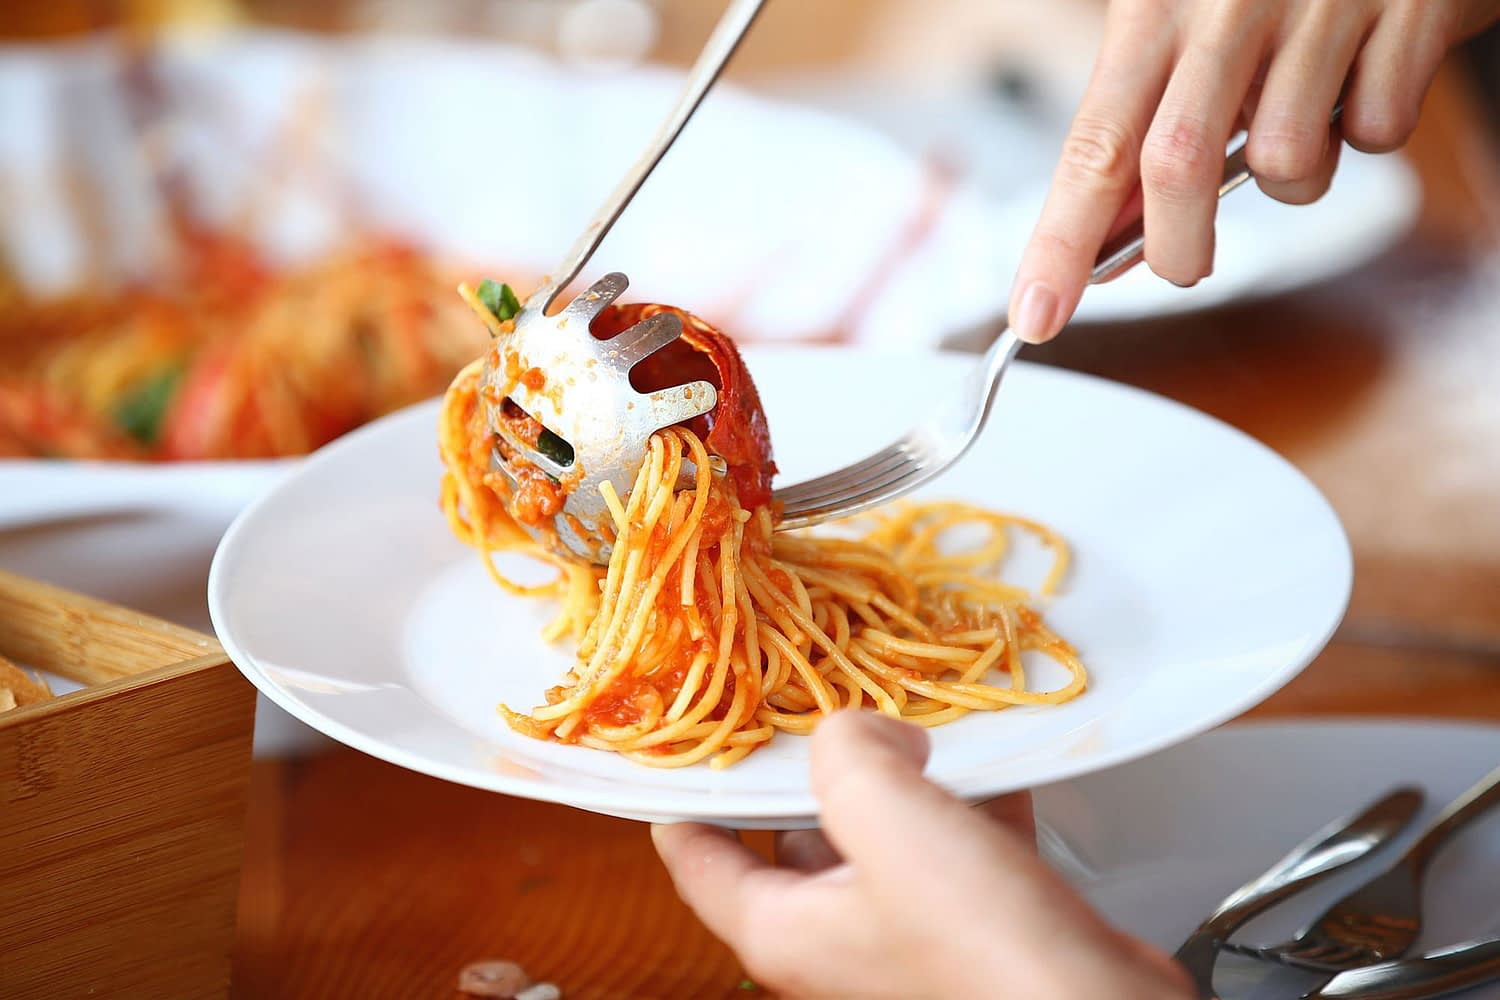 Archipelago Tours - Kornati Experience Private tour our photo of a plate of spaghetti with tomato sauce